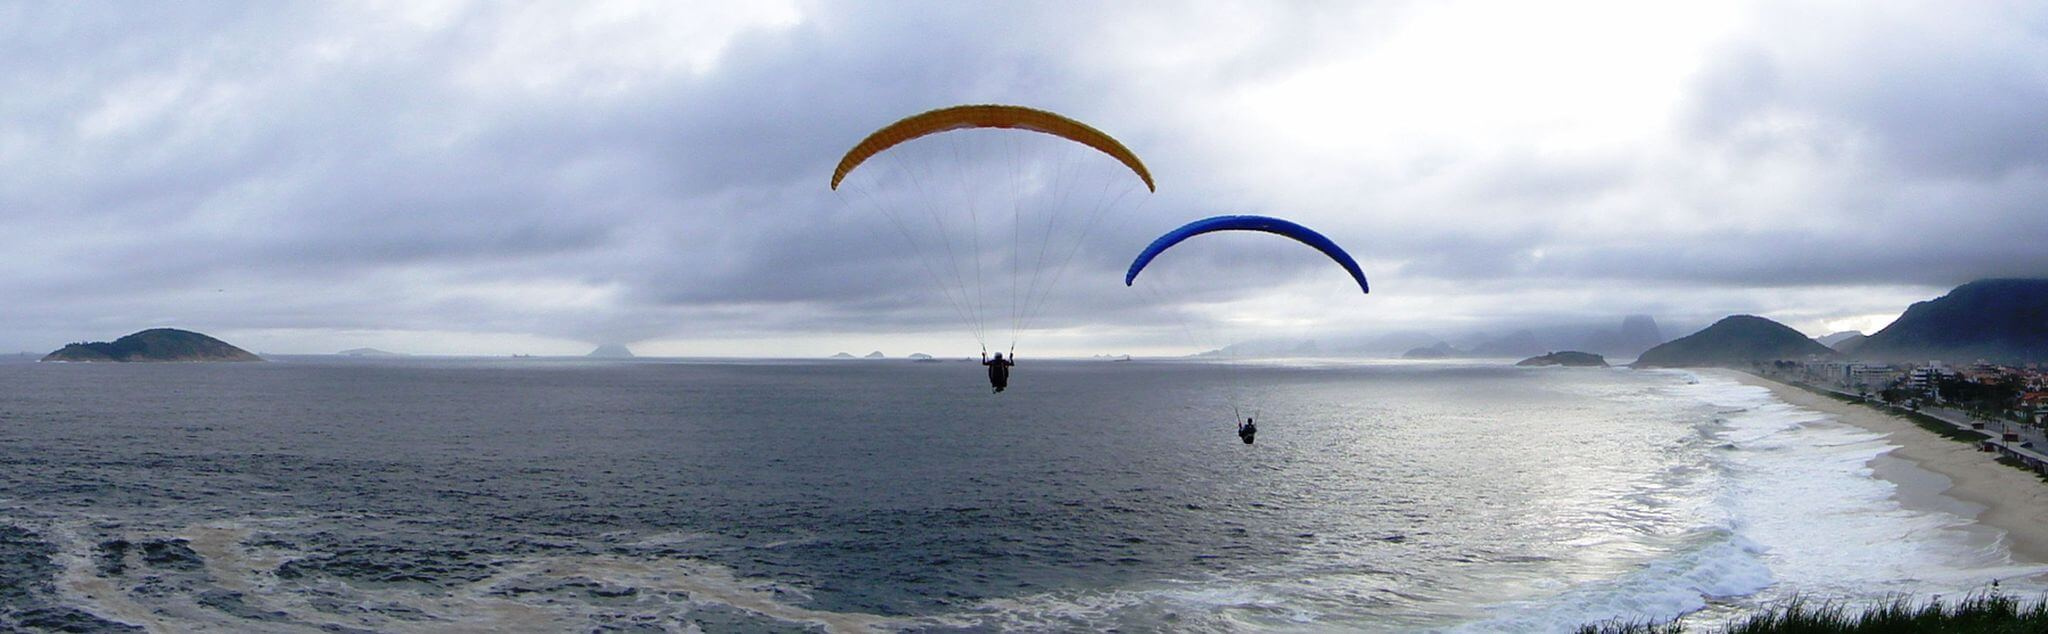 Paragliding in Alicante